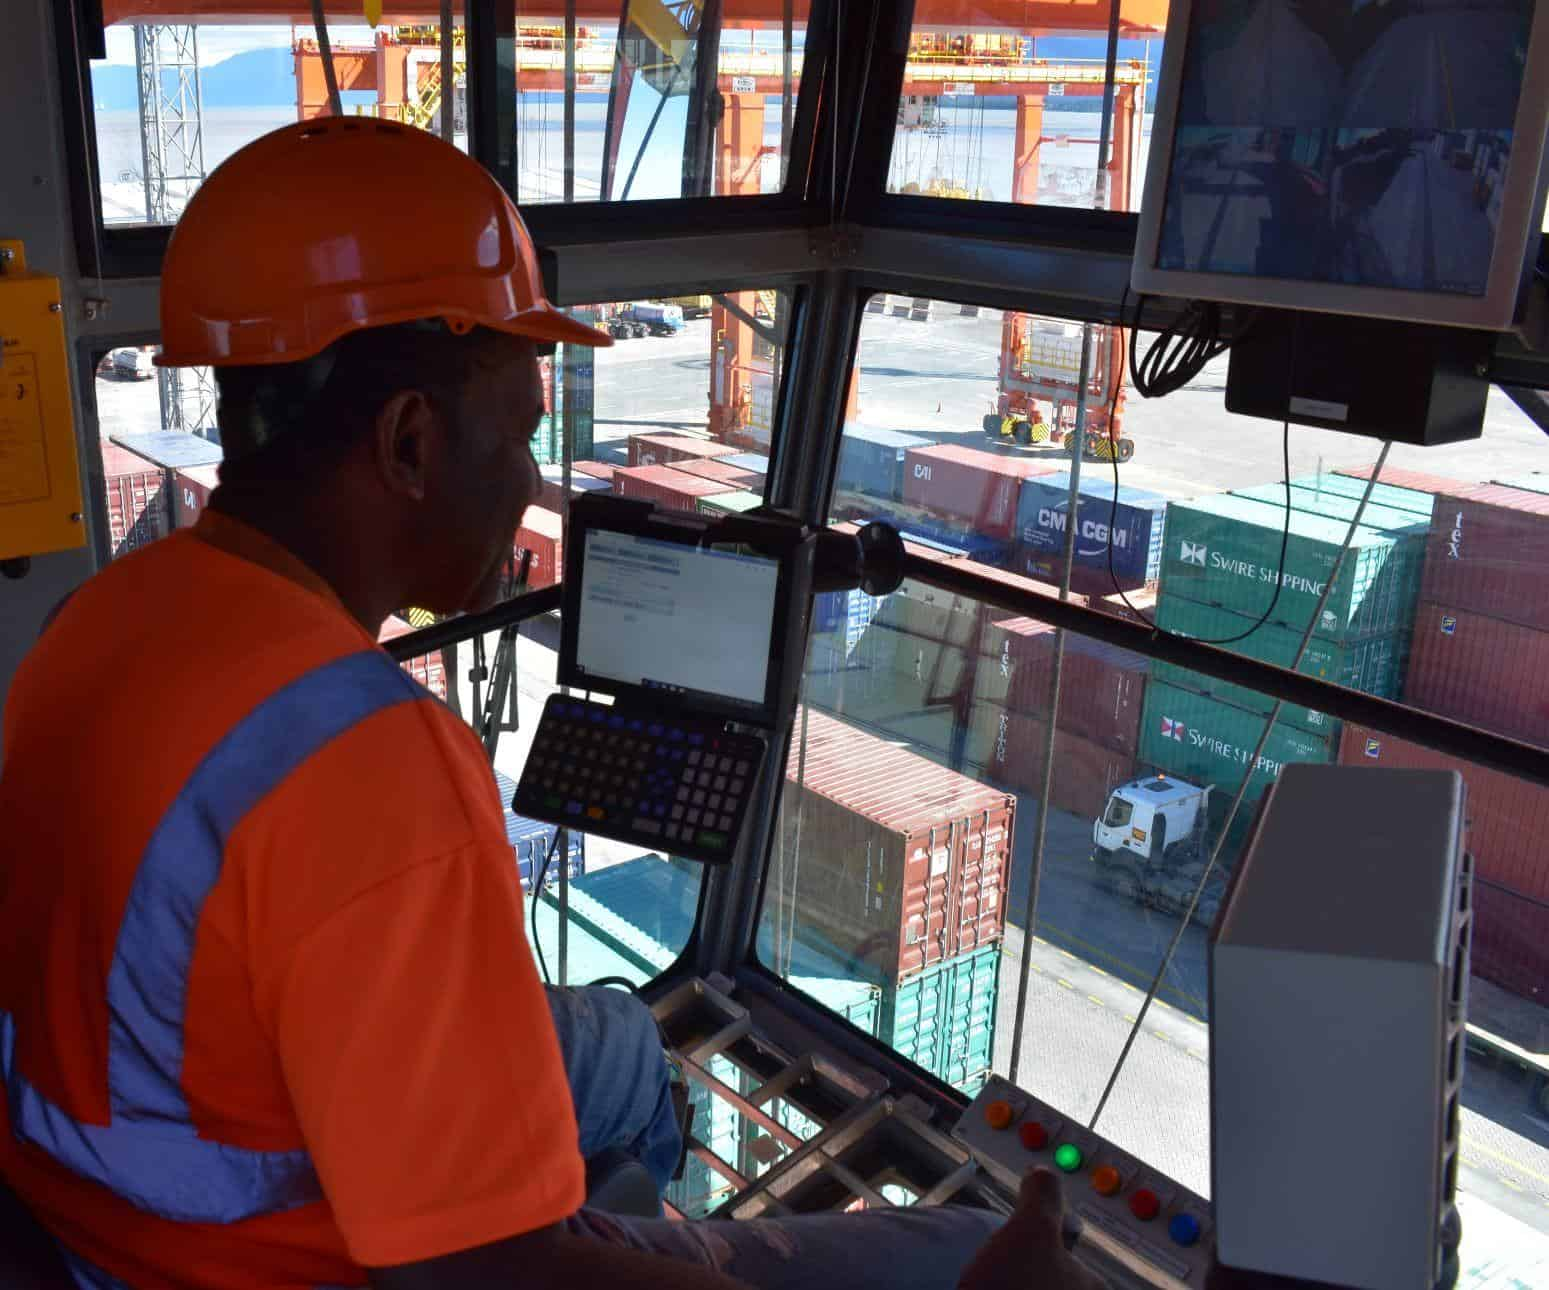 JLT Mobile Computers to install computers at ICTSI in Papua New Guinea